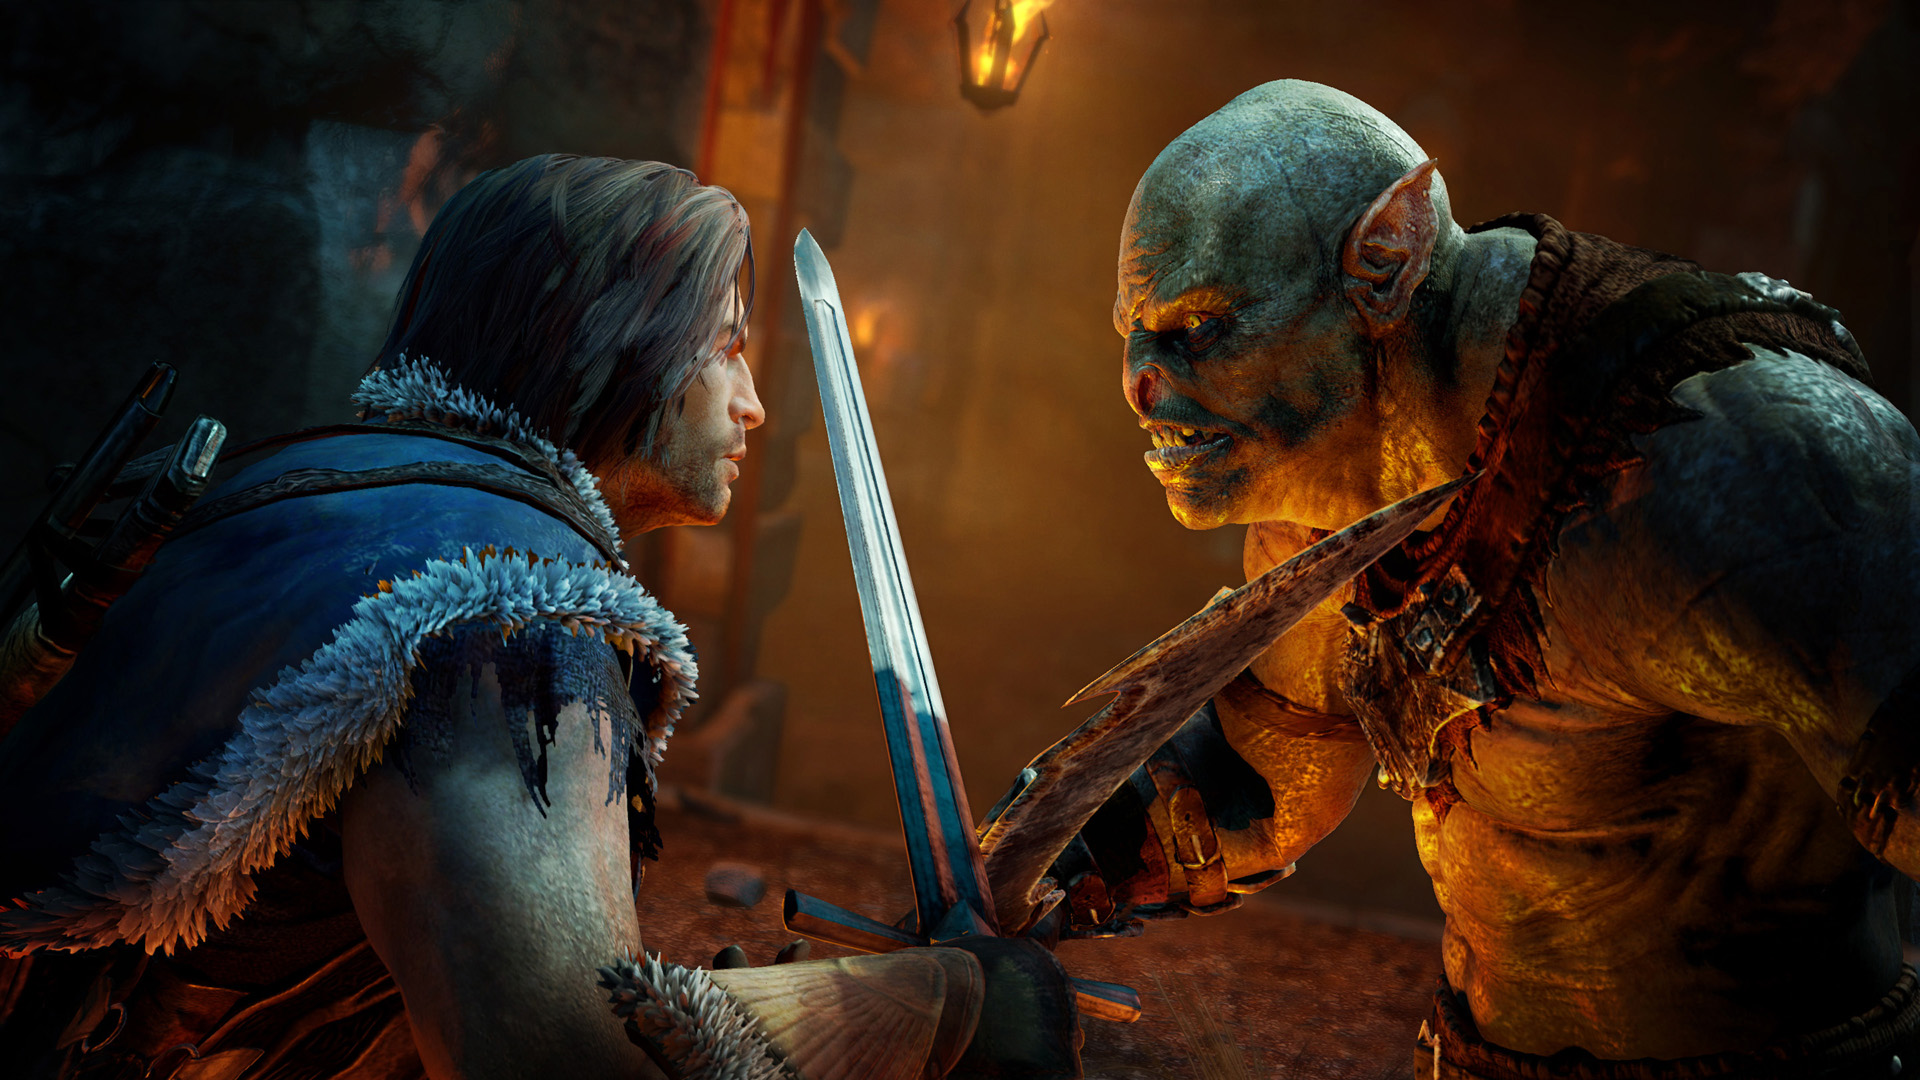 El personaje principal de Shadow of Mordor es imparable [E3 2014]